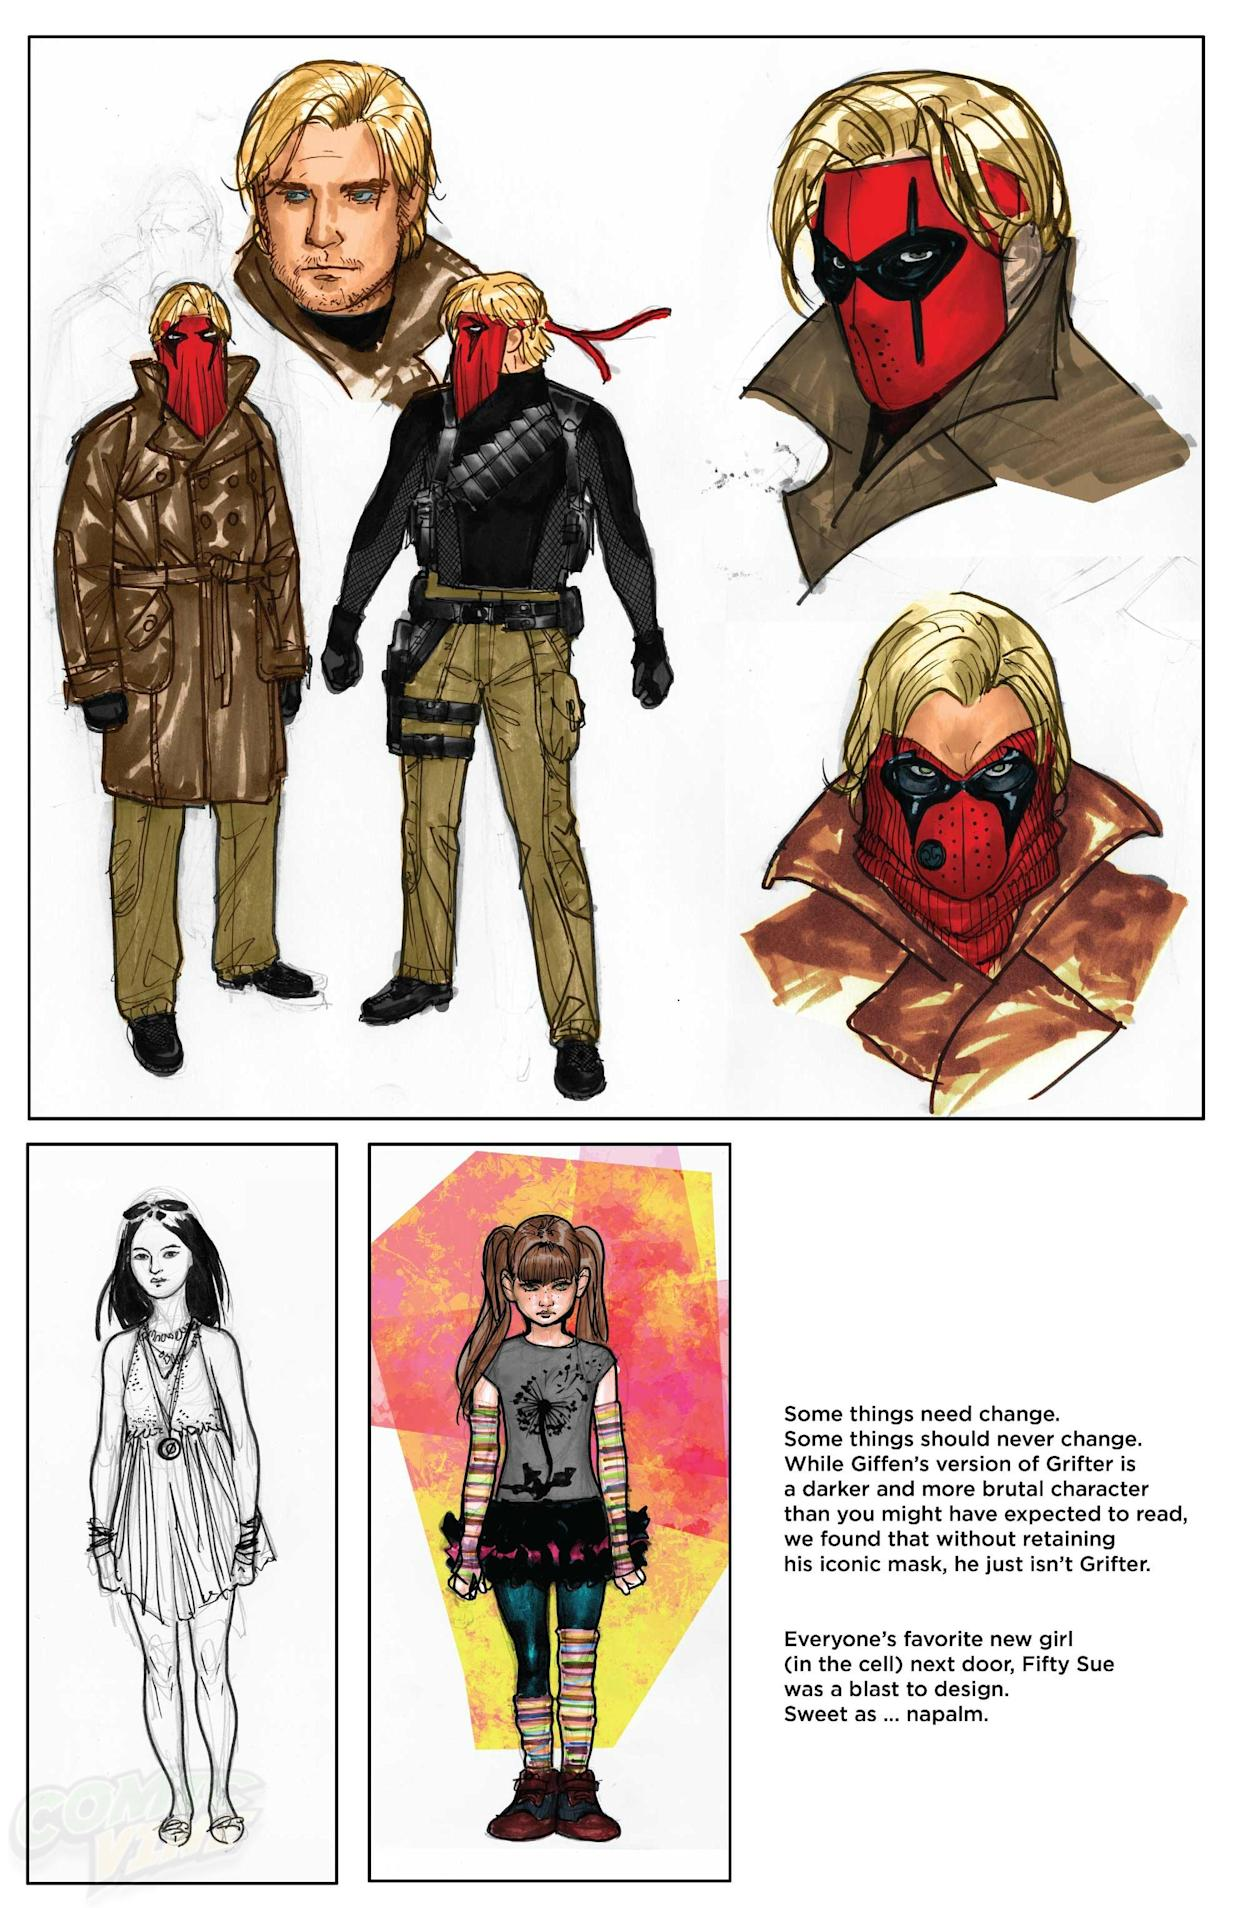 Character Sketches from THE NEW 52: FUTURES END VOL  1 Revealed